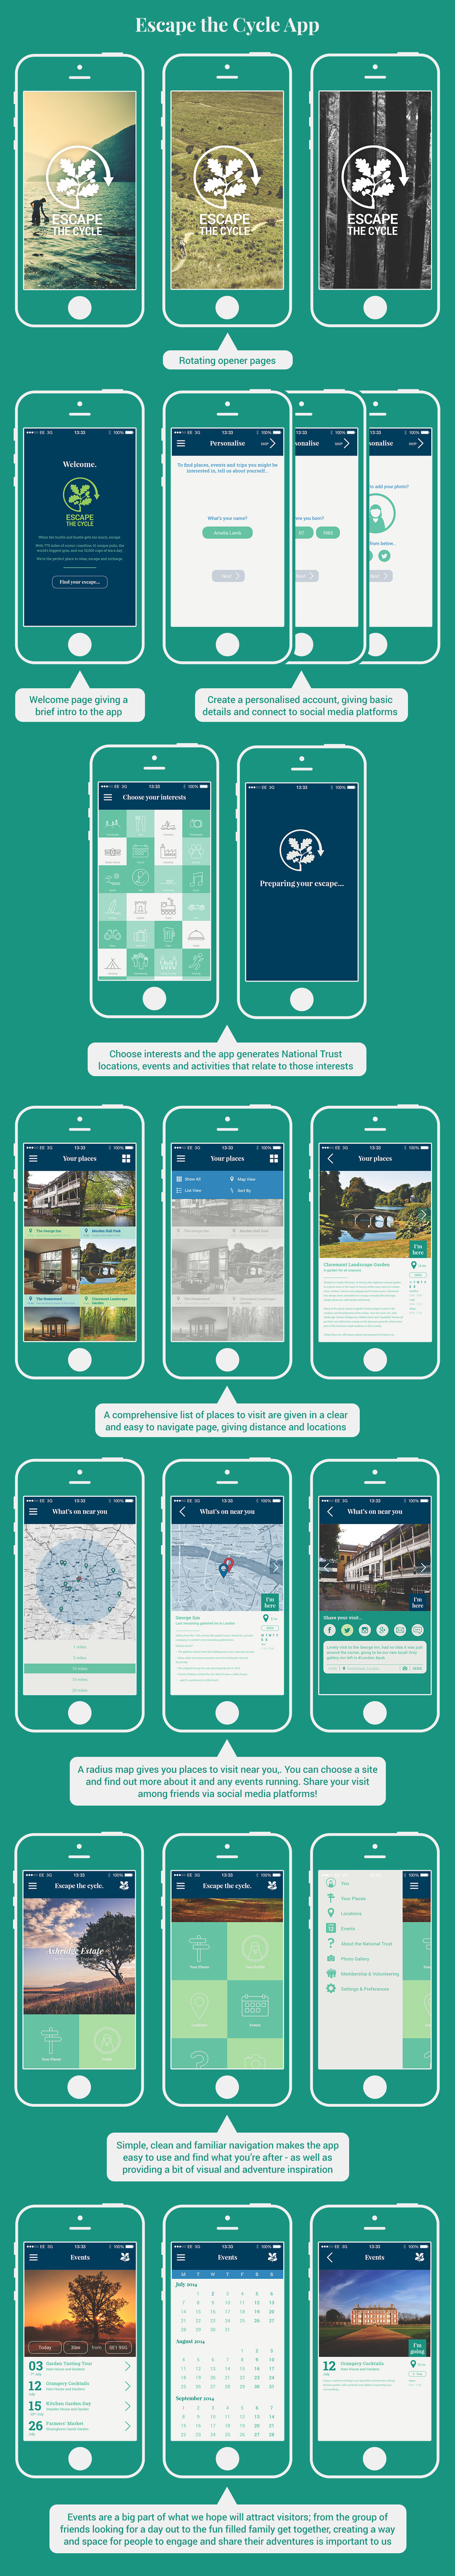 App design for the initiative, creating an easy way for potential visitors see what's going on, arrange and plan trips with friends and family as well as get lots of interesting info about the Trust